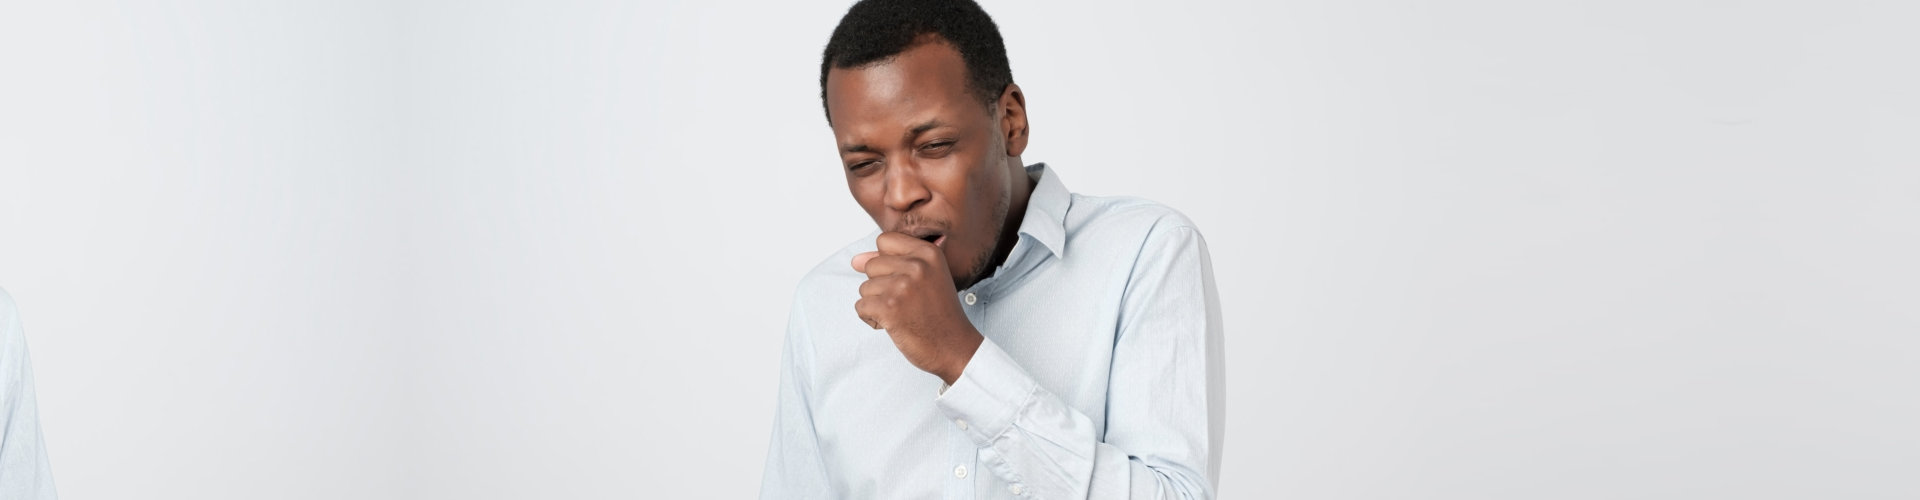 african young man coughing having flu